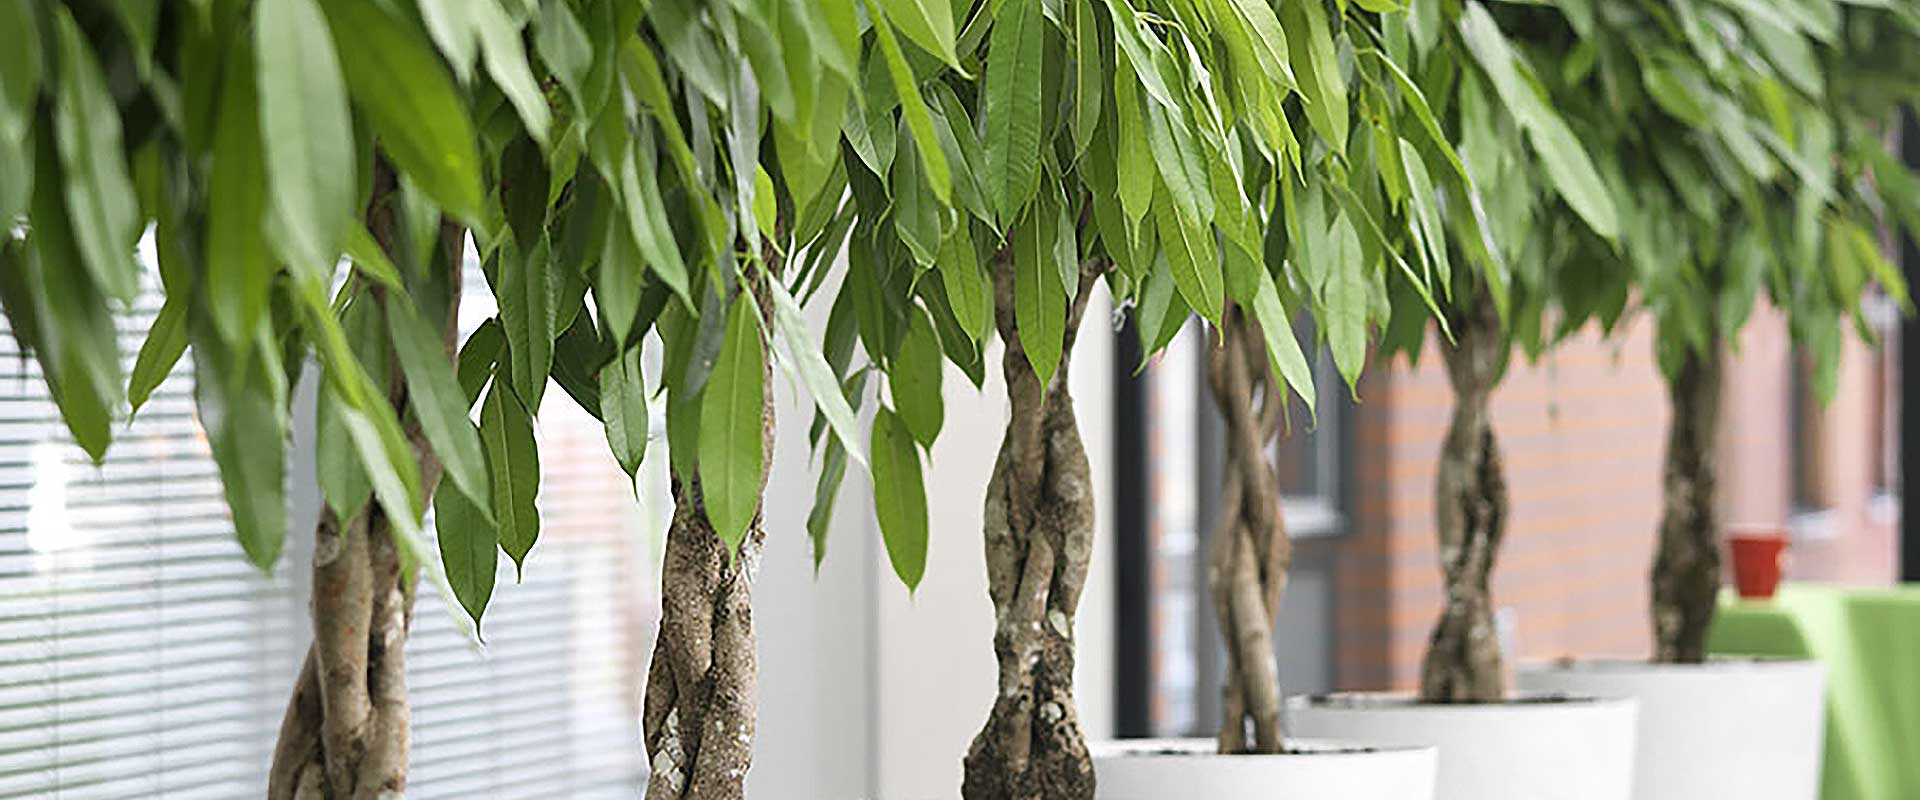 Potted trees in office environment